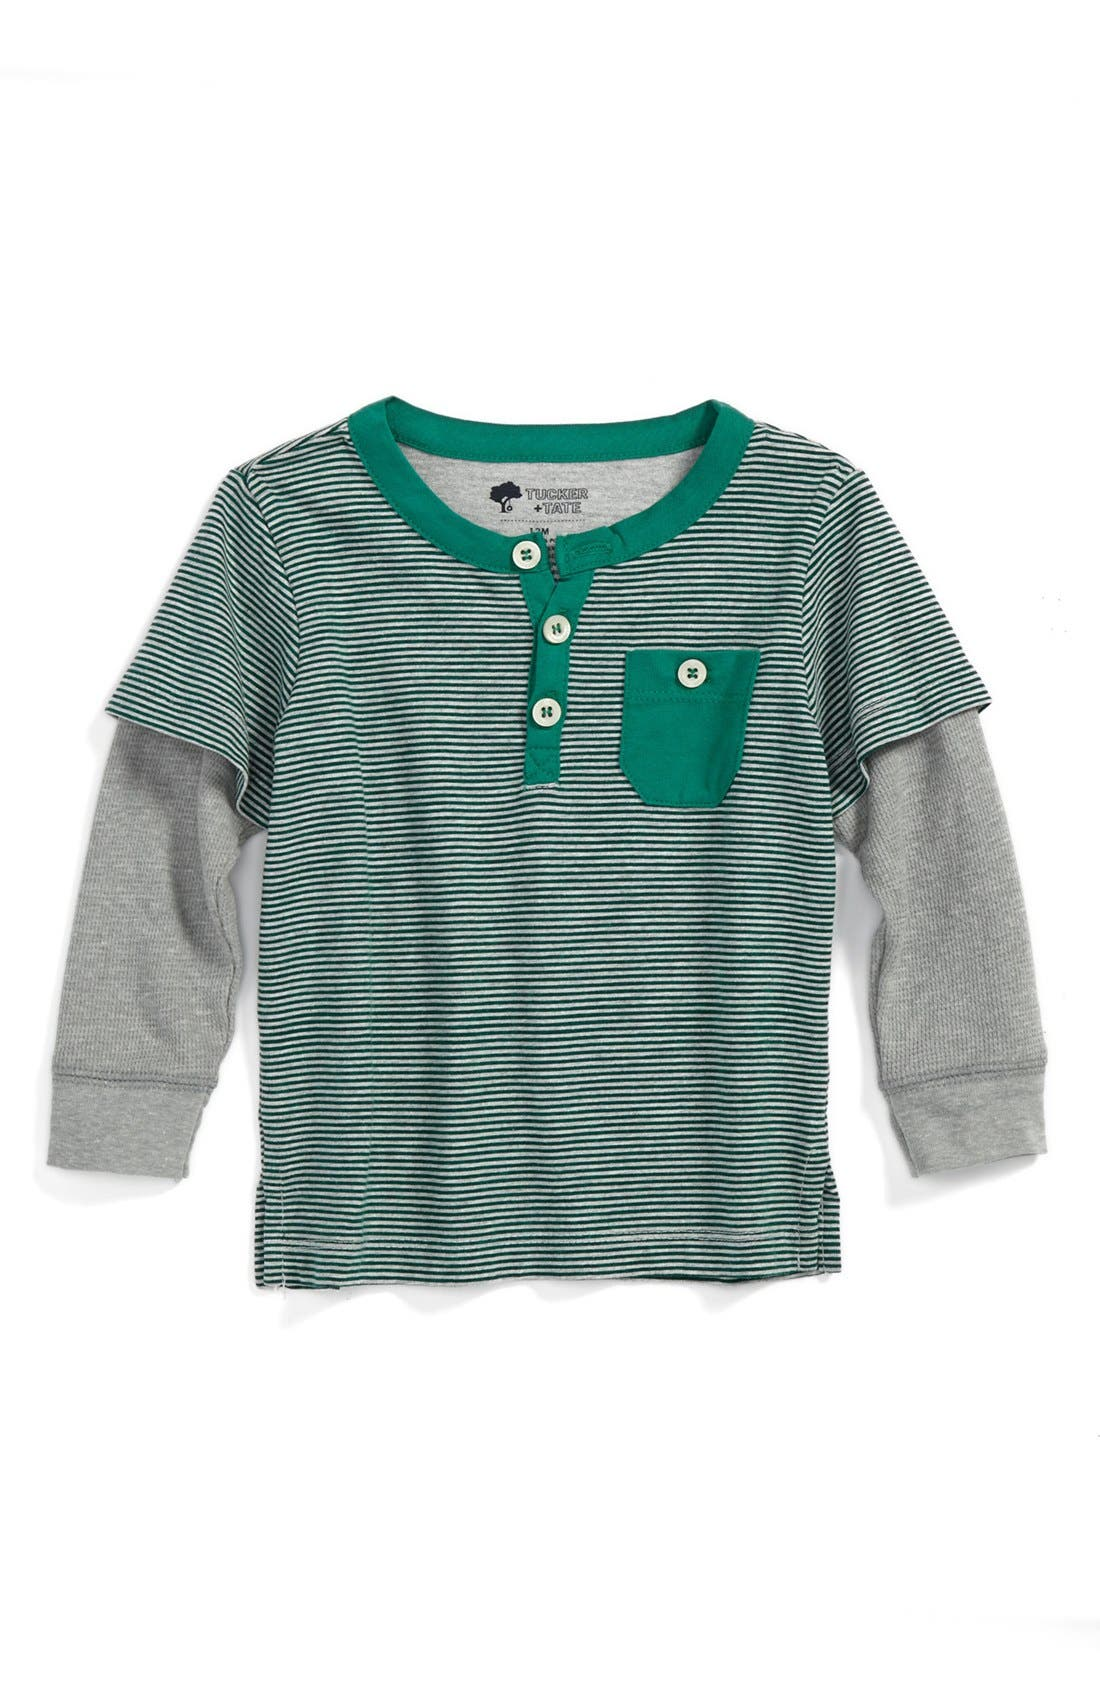 Main Image - Tucker + Tate 'Parker Road'  Layered Sleeve Henley T-Shirt (Toddler Boys)